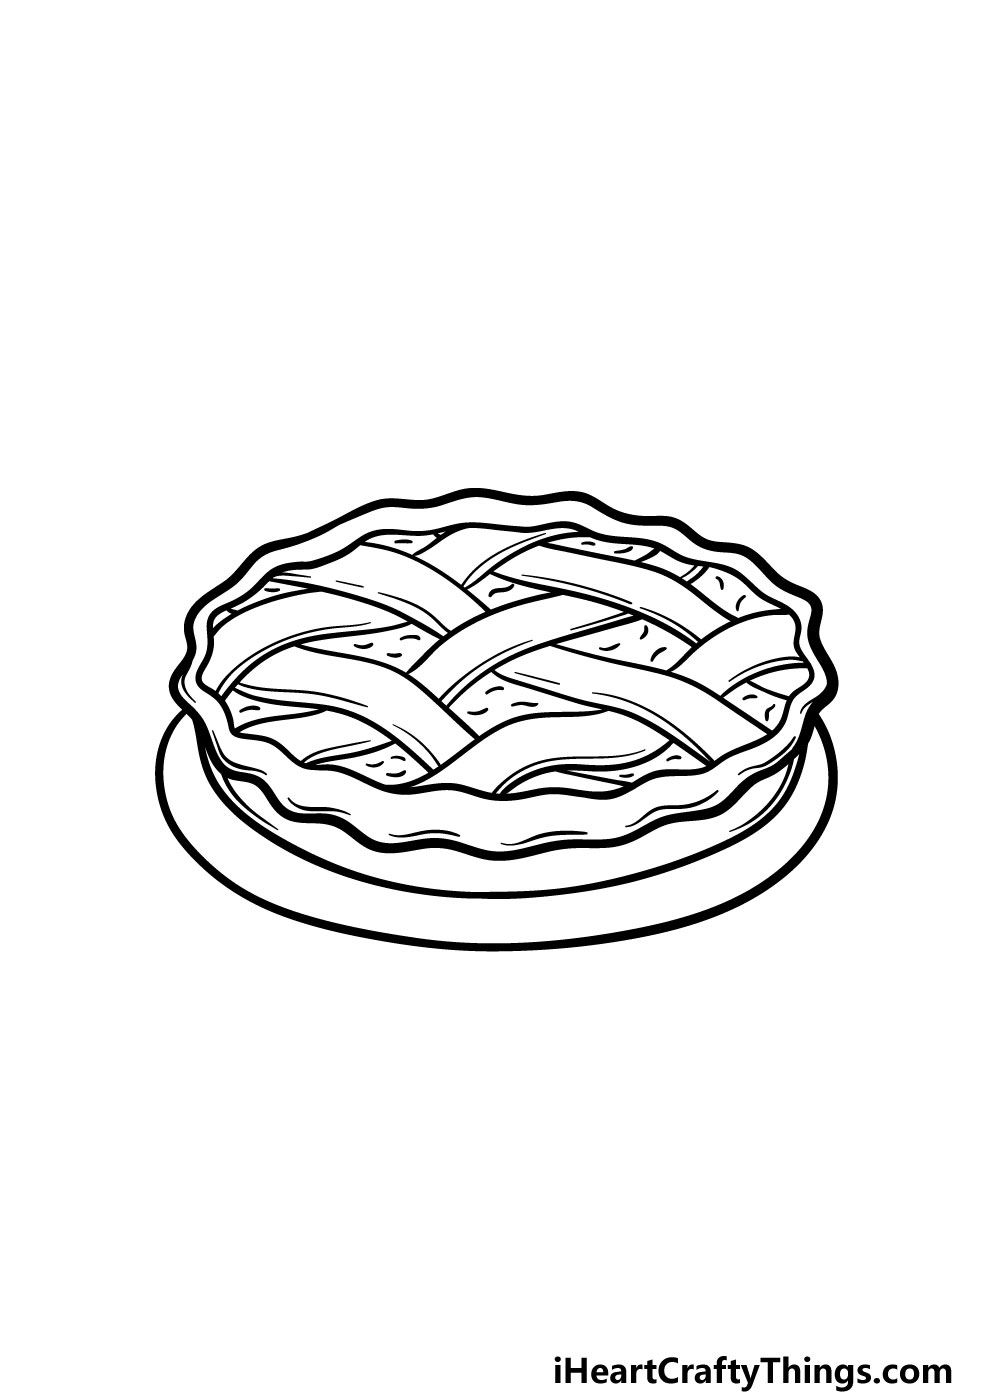 drawing a pie step 5